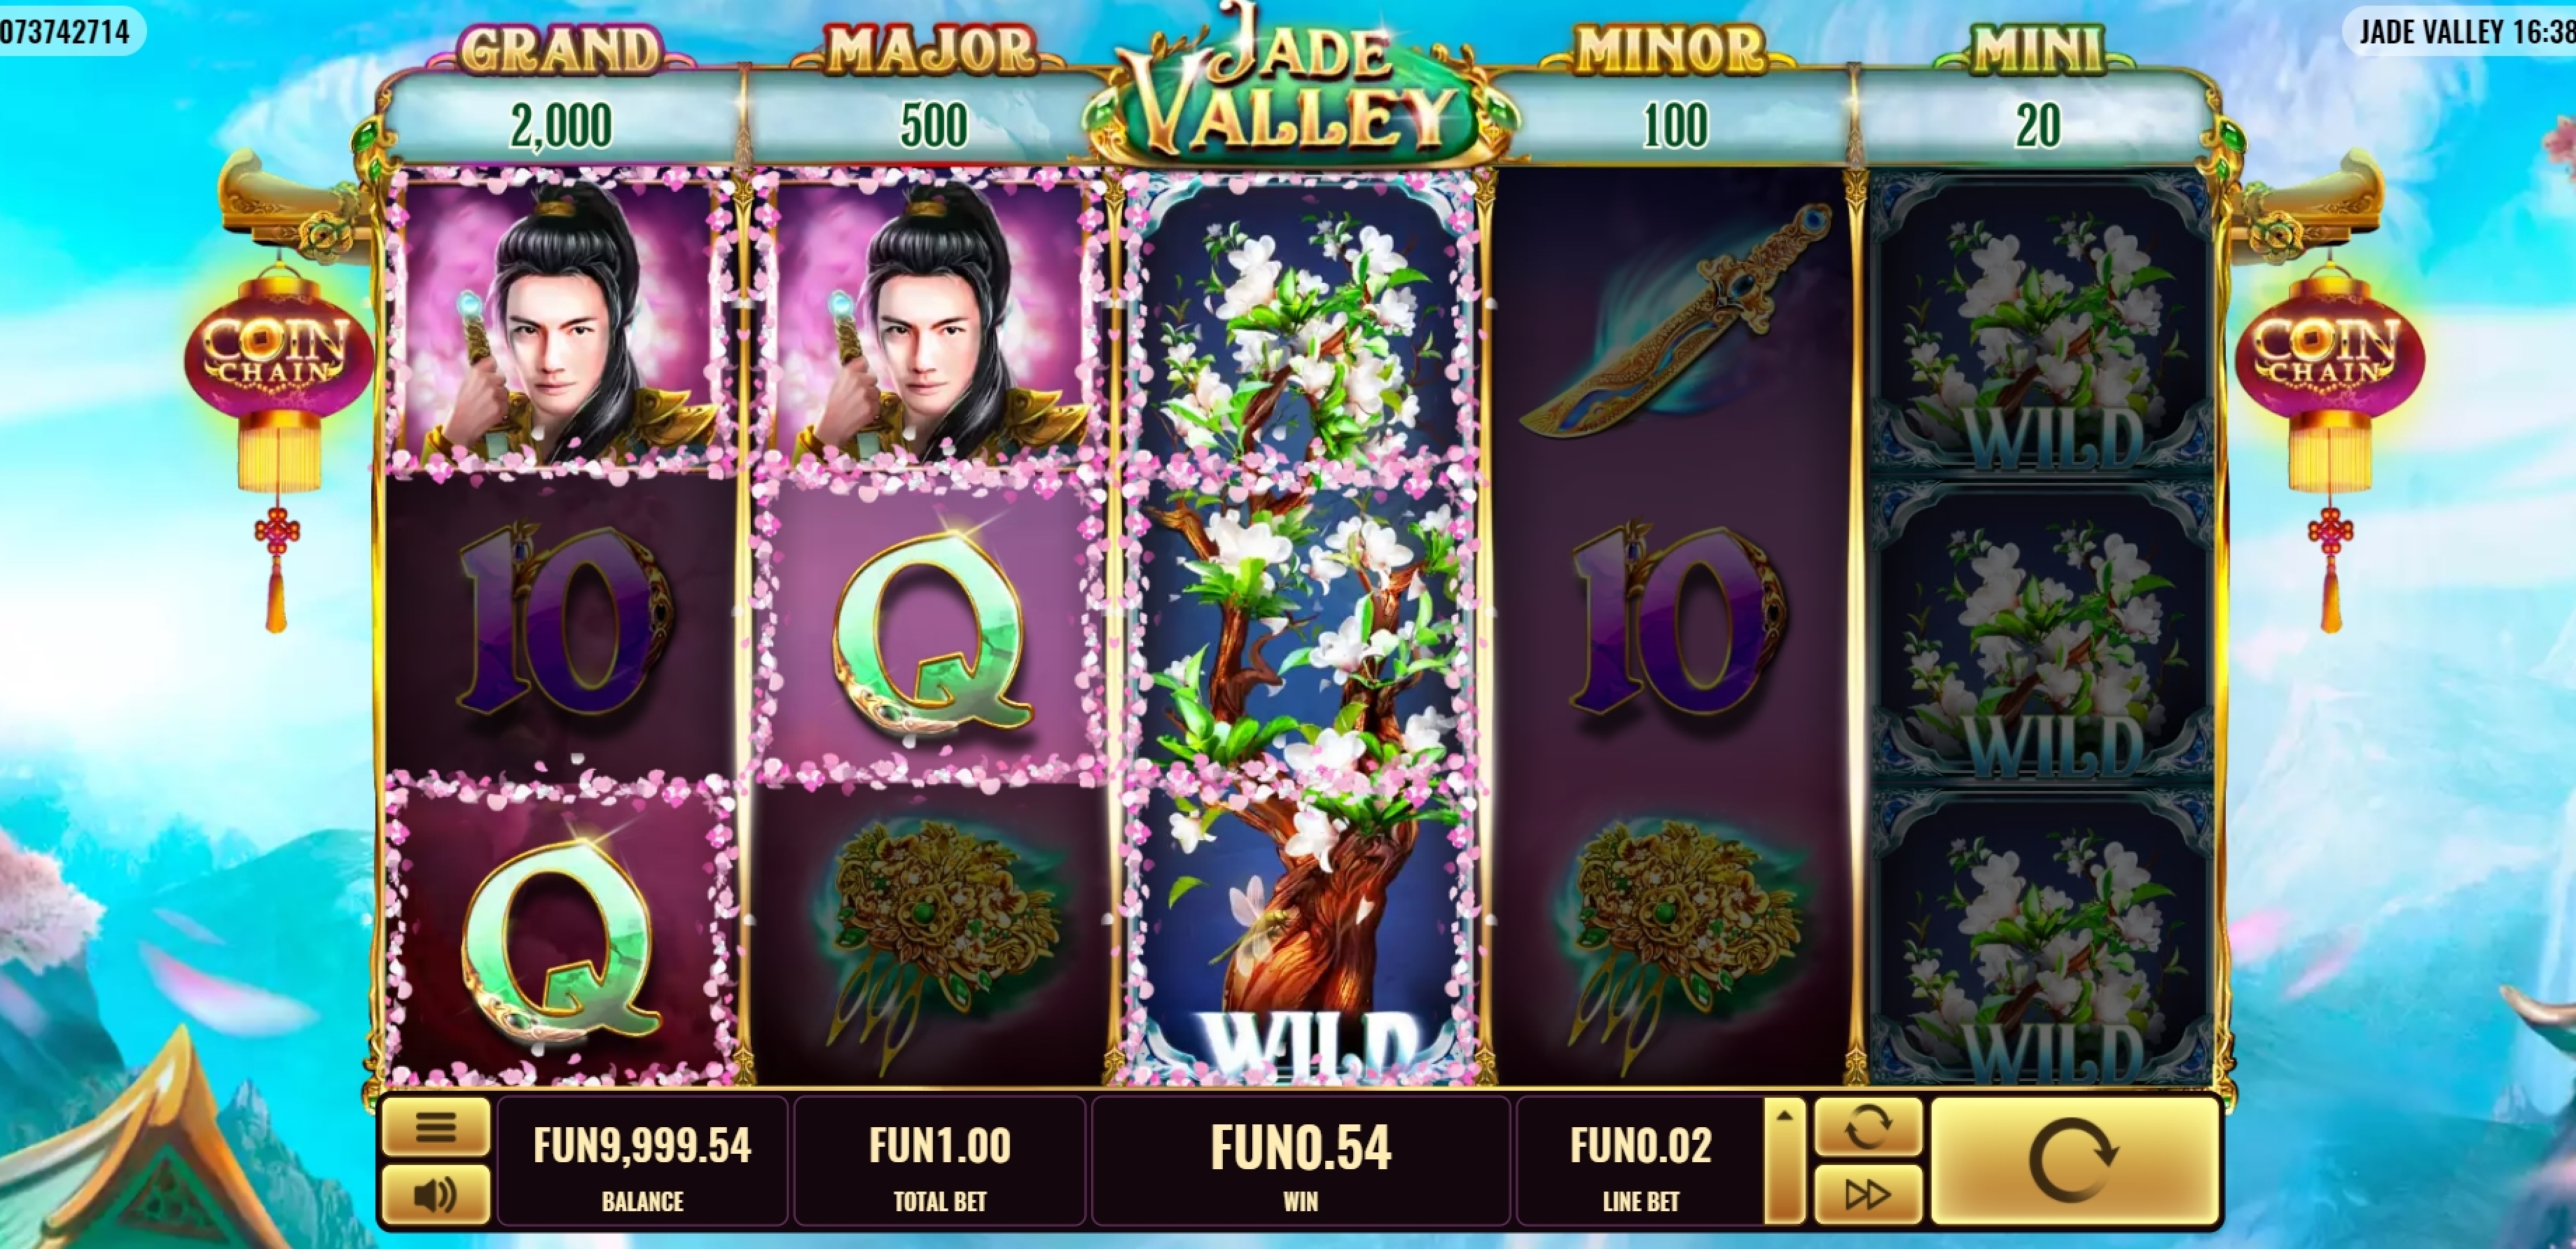 Win Money in Jade Valley Free Slot Game by Platipus